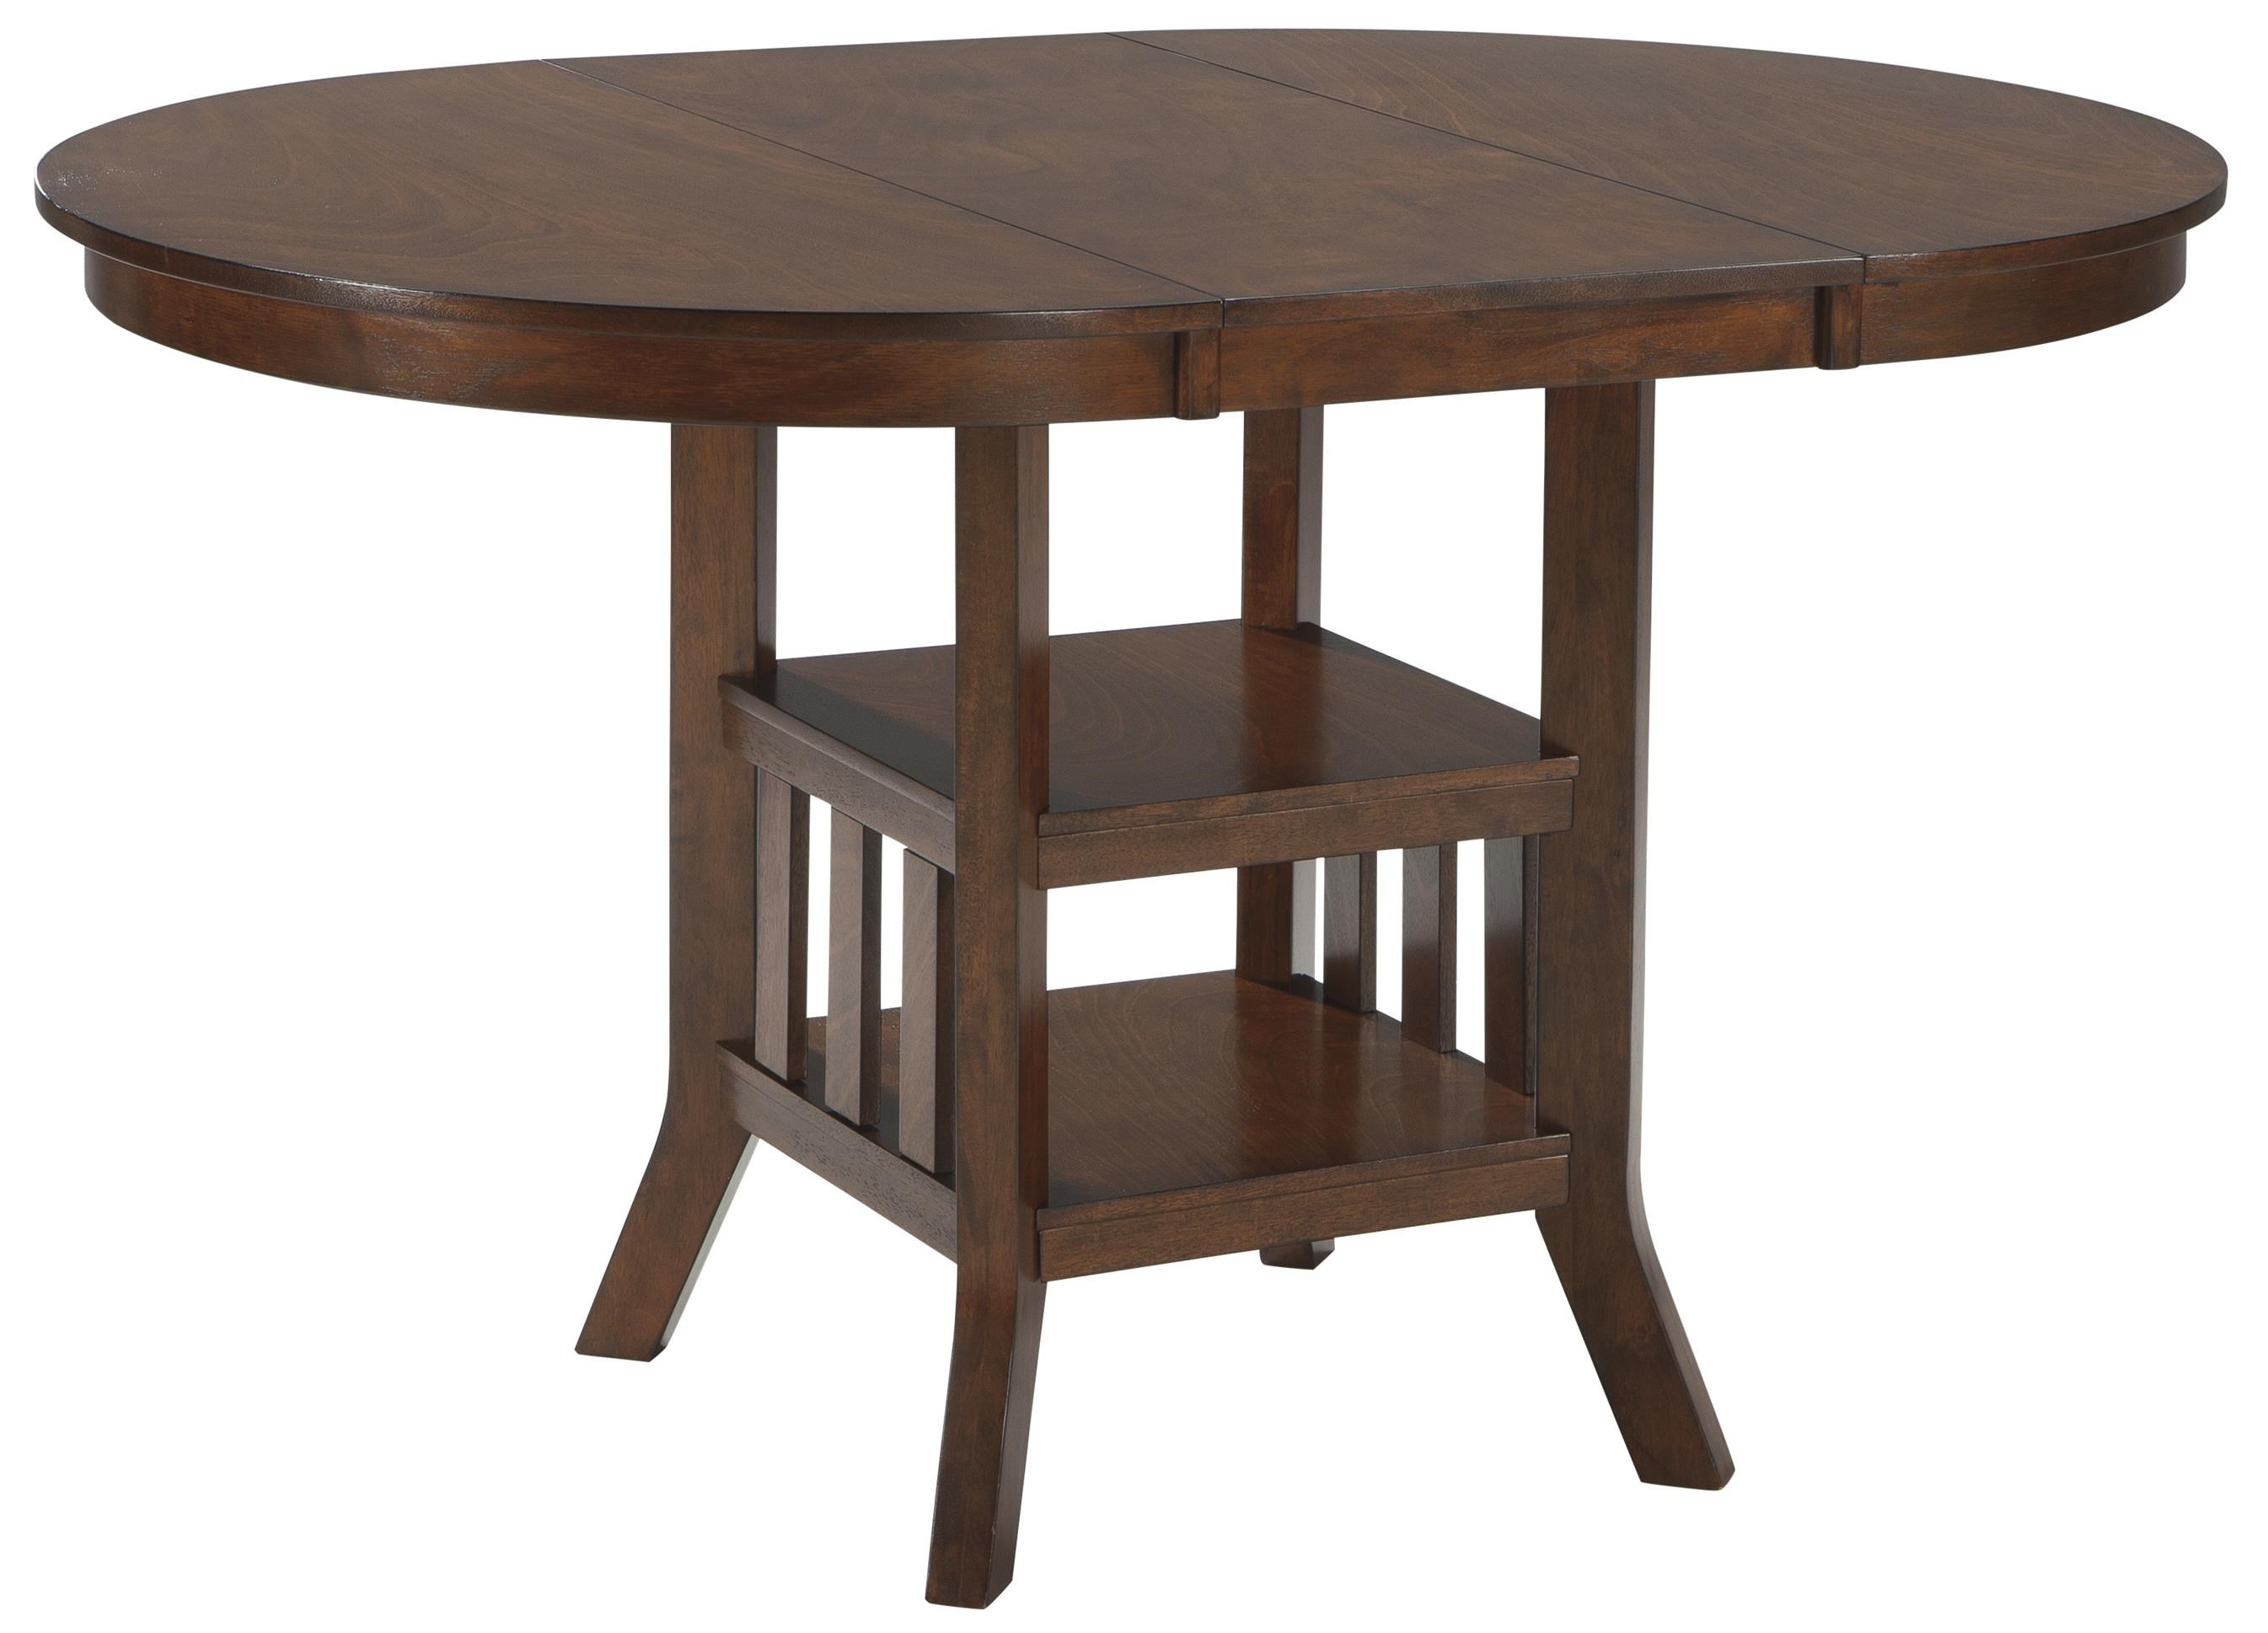 Signature Design By Ashley Renaburg Oval Dining Room Counter Extension Table  With 2 Shelves